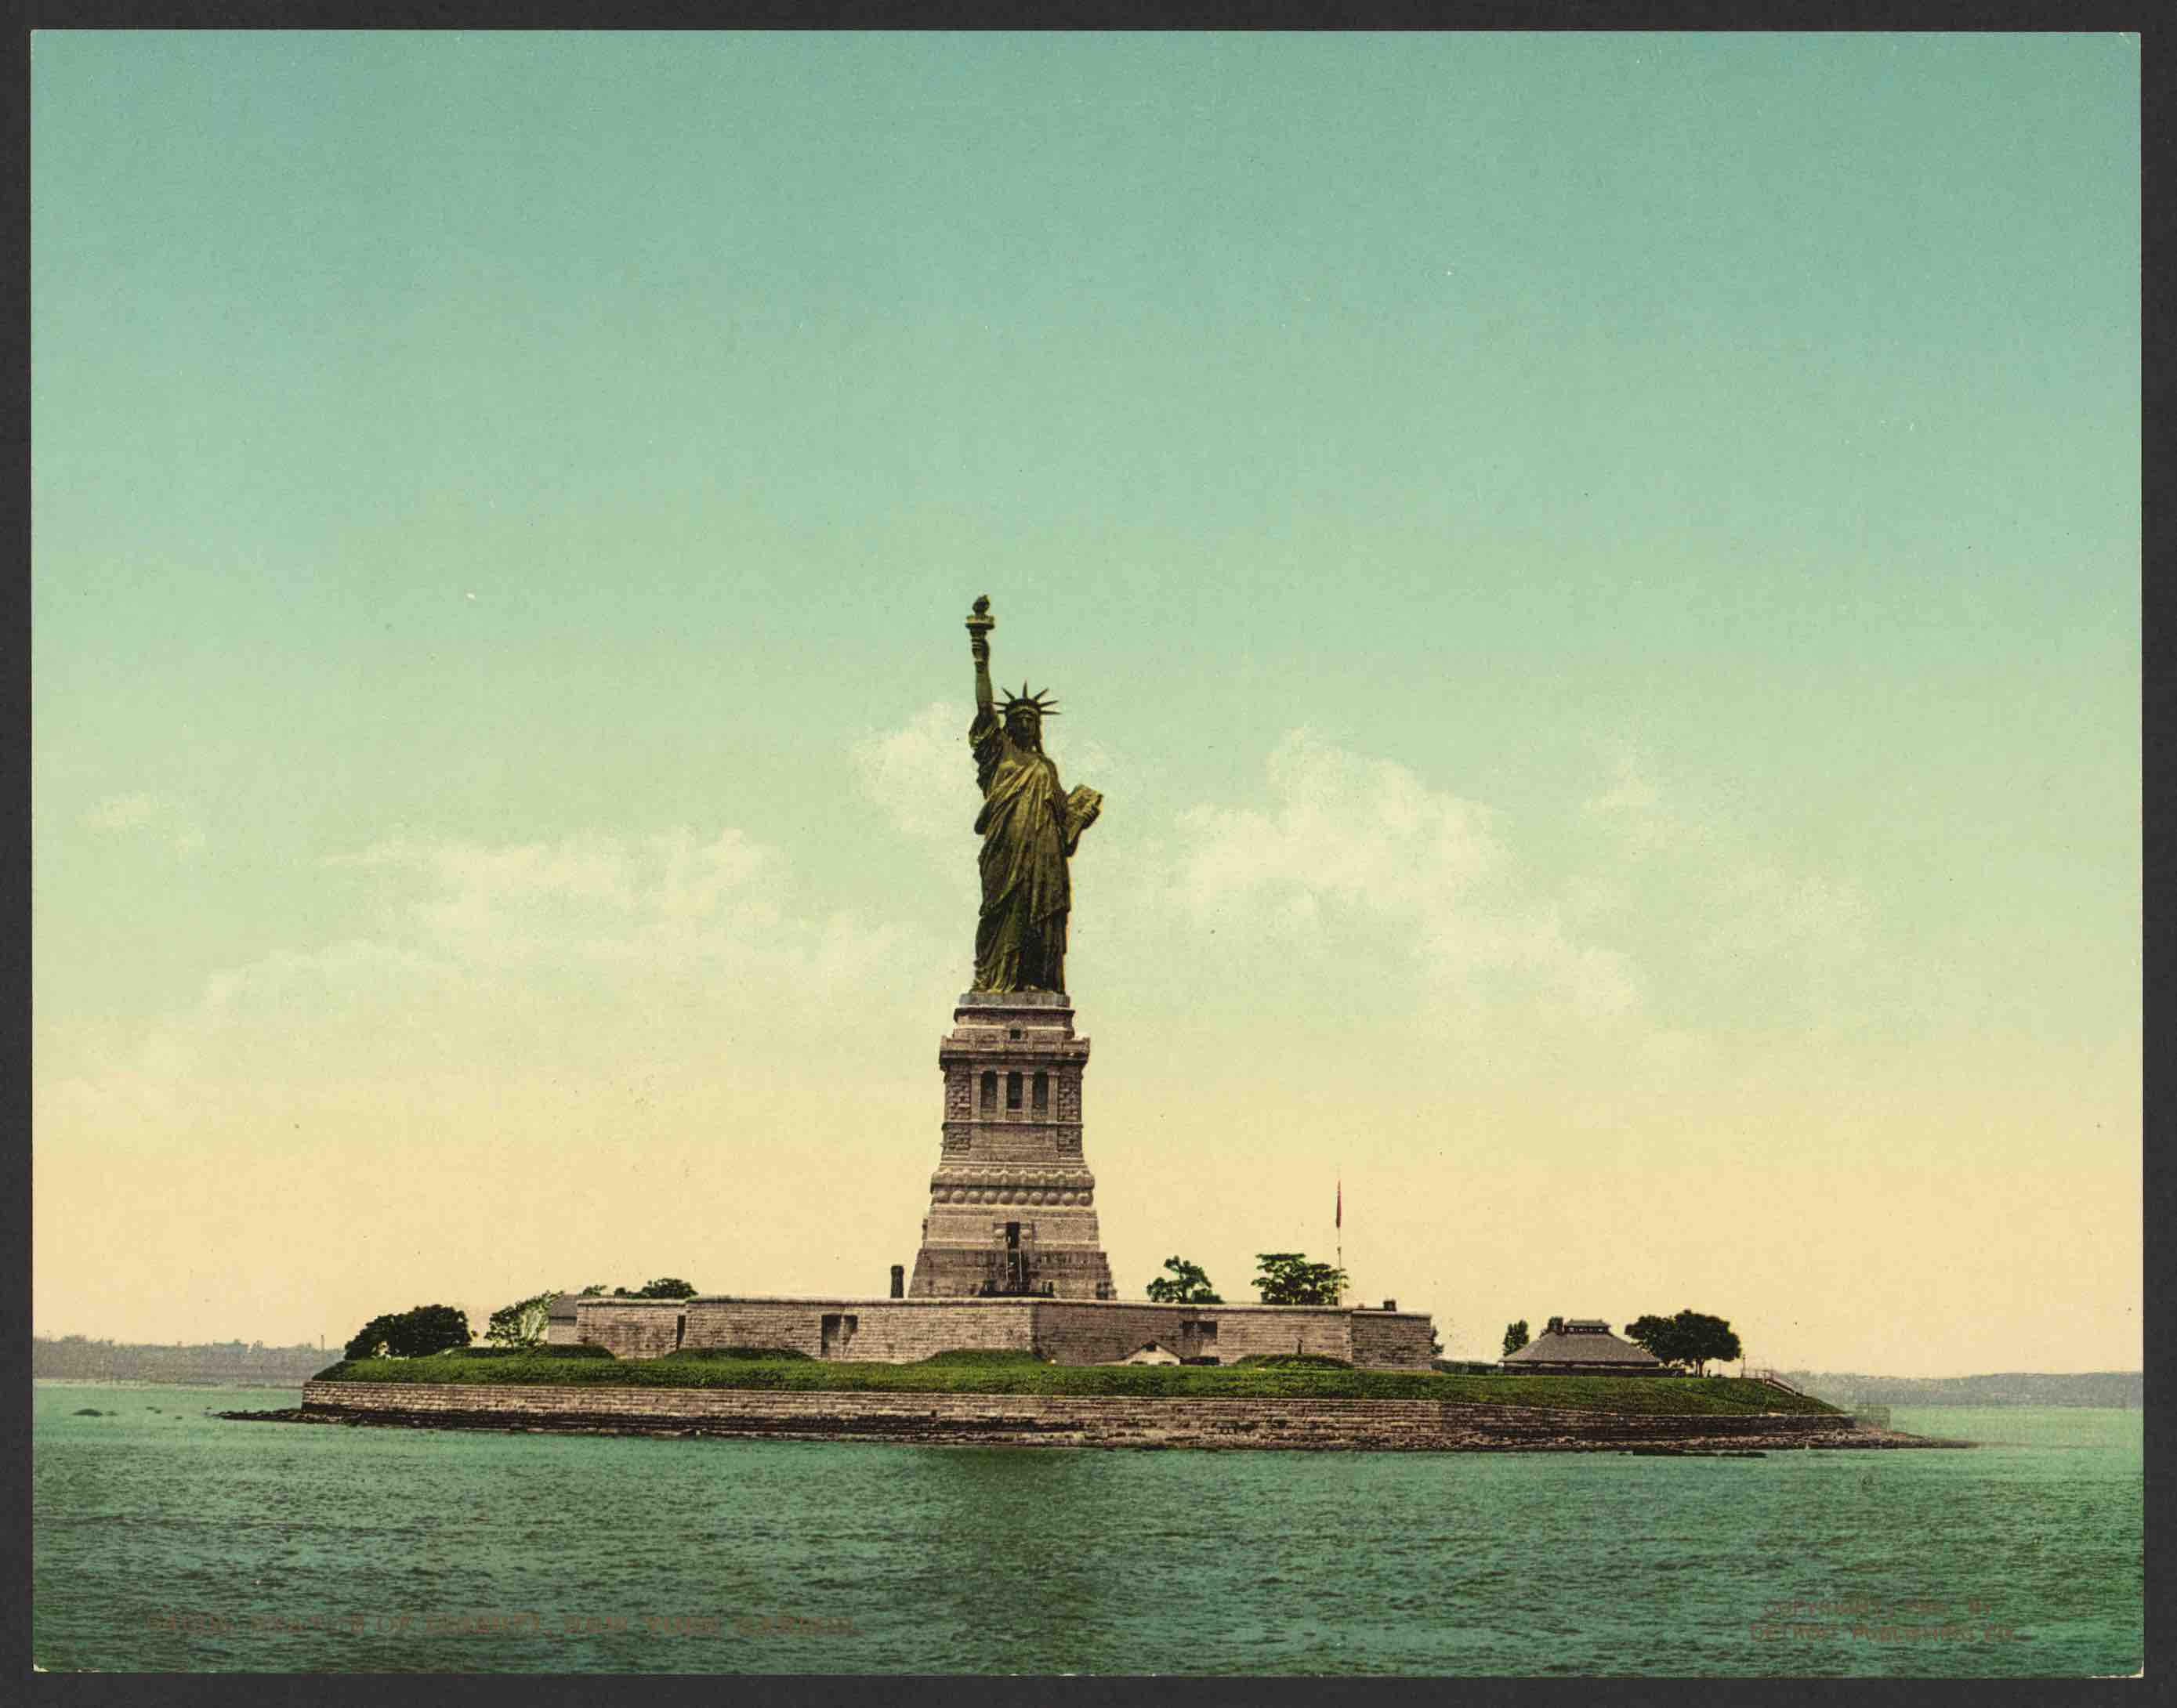 Statue of Liberty in New York Harbor, about 1905. Courtesy, U.S. Library of Congress.